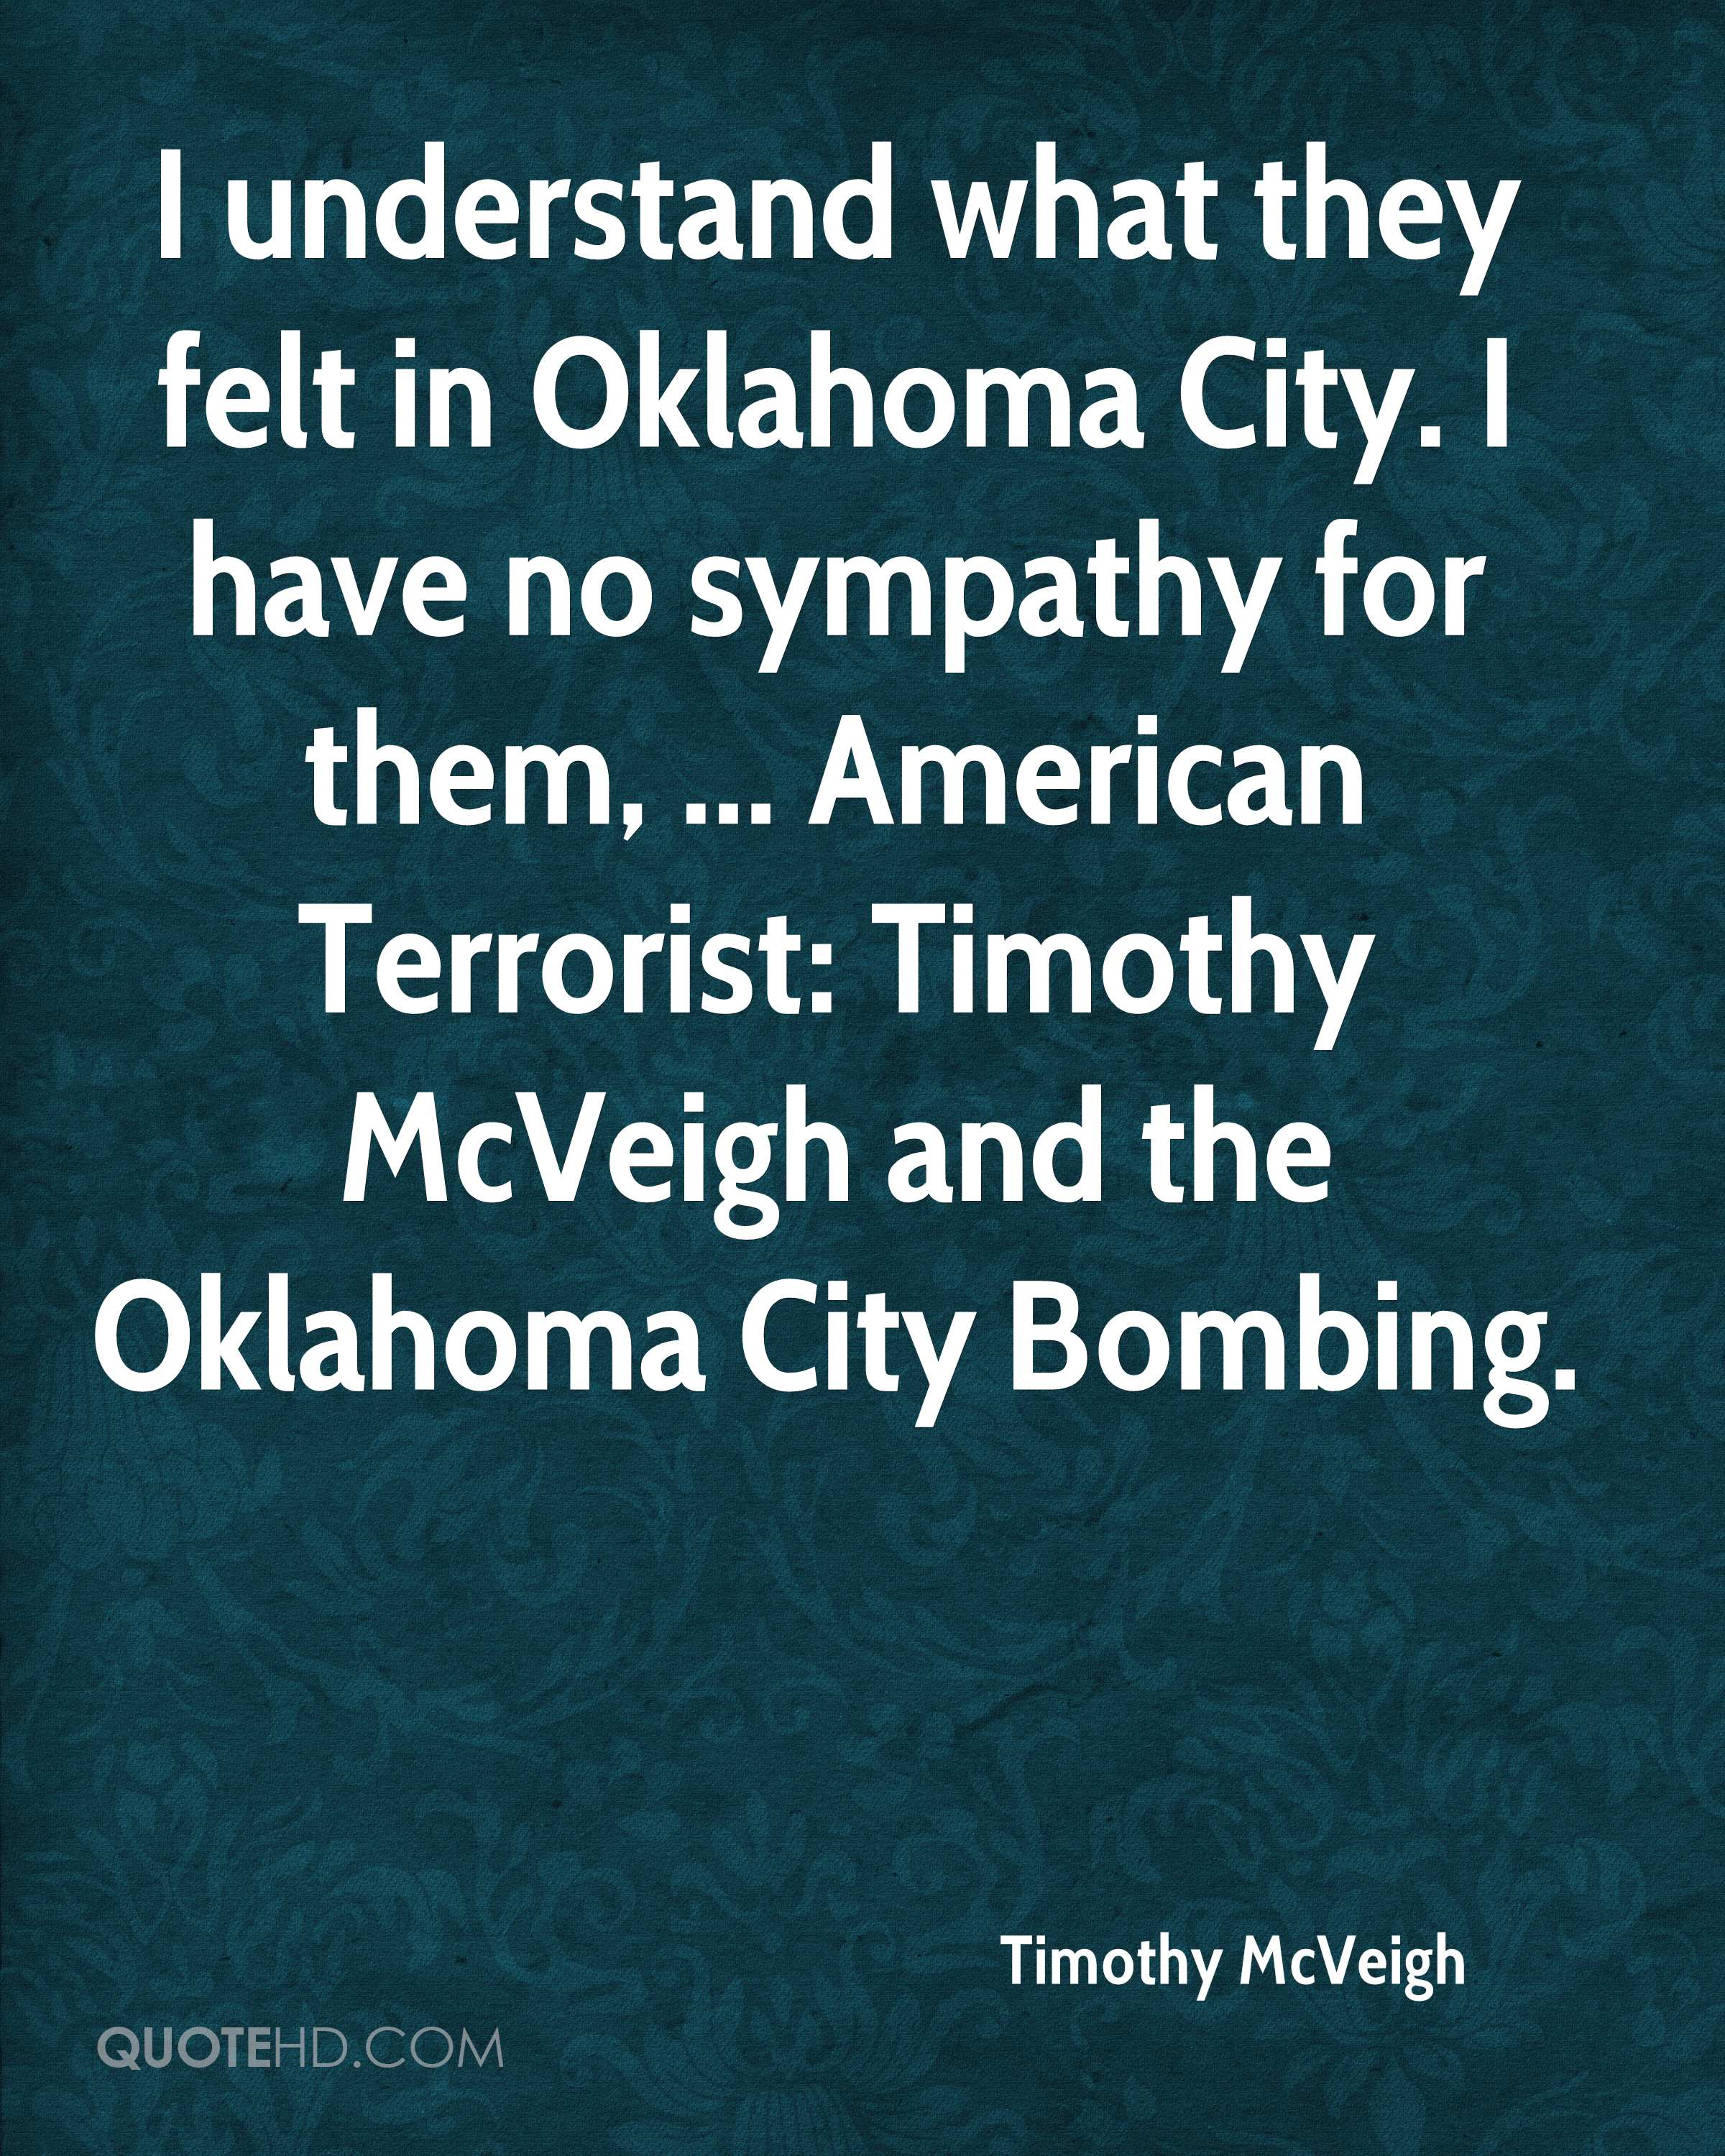 I understand what they felt in Oklahoma City. I have no sympathy for them, ... American Terrorist: Timothy McVeigh and the Oklahoma City Bombing.